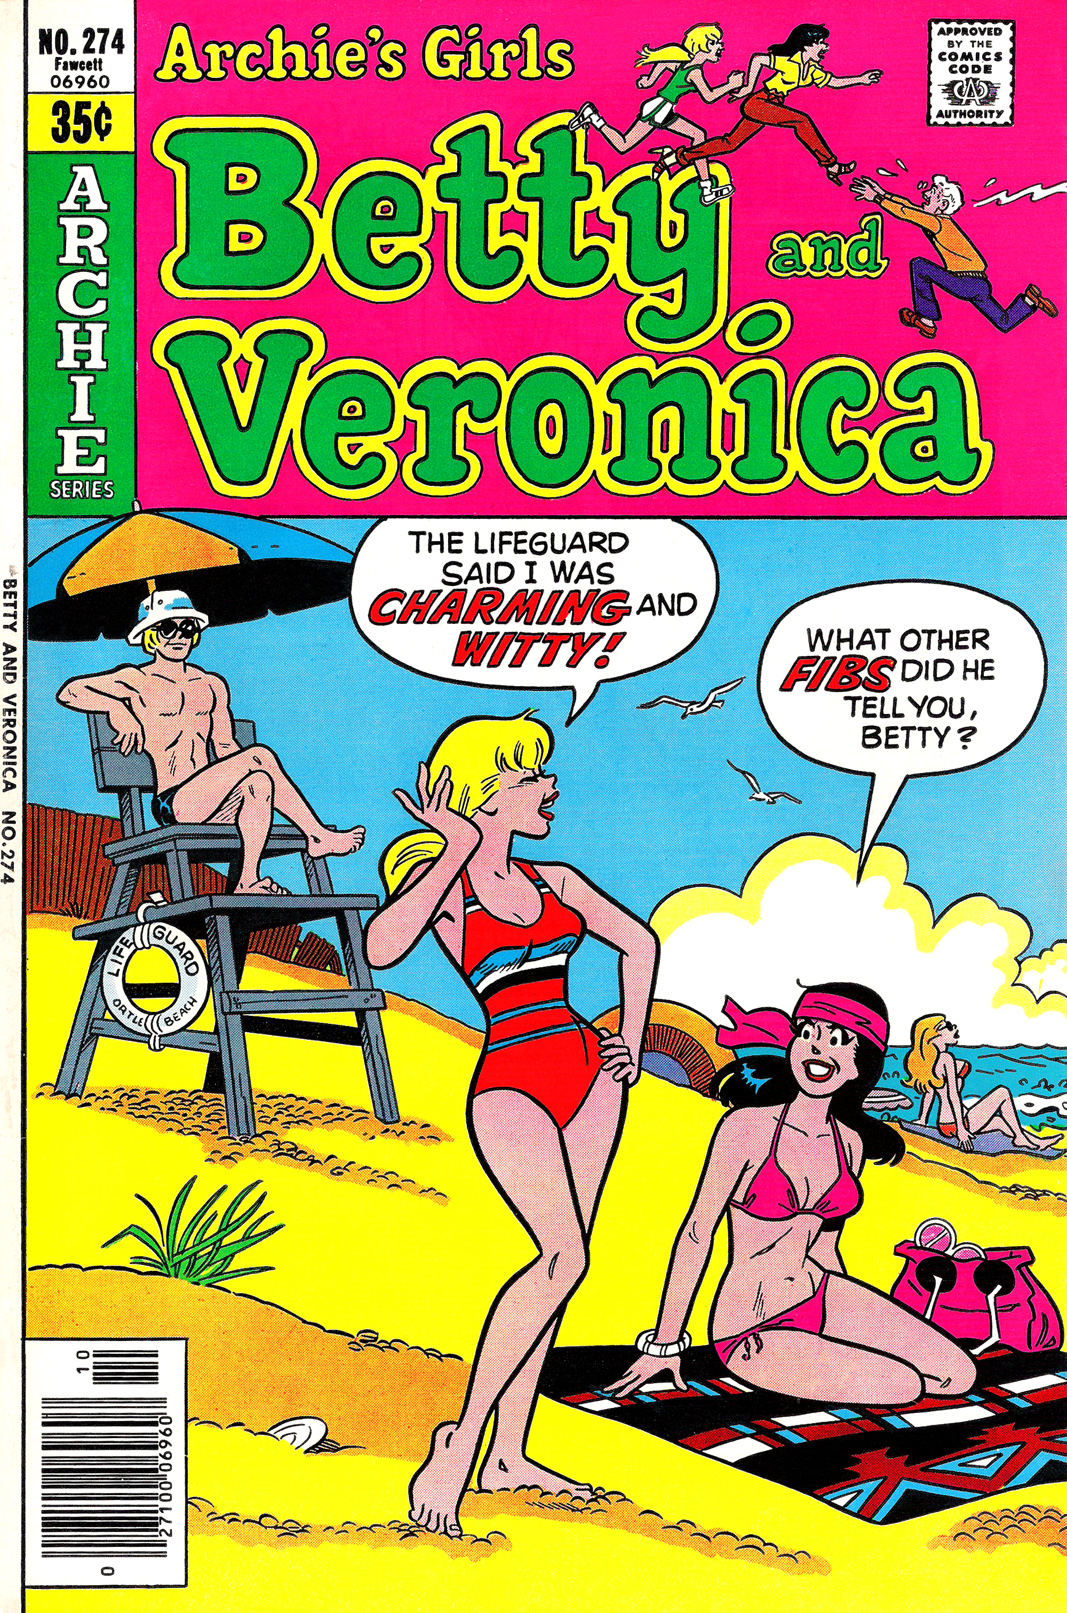 Read online Archie's Girls Betty and Veronica comic -  Issue #274 - 1